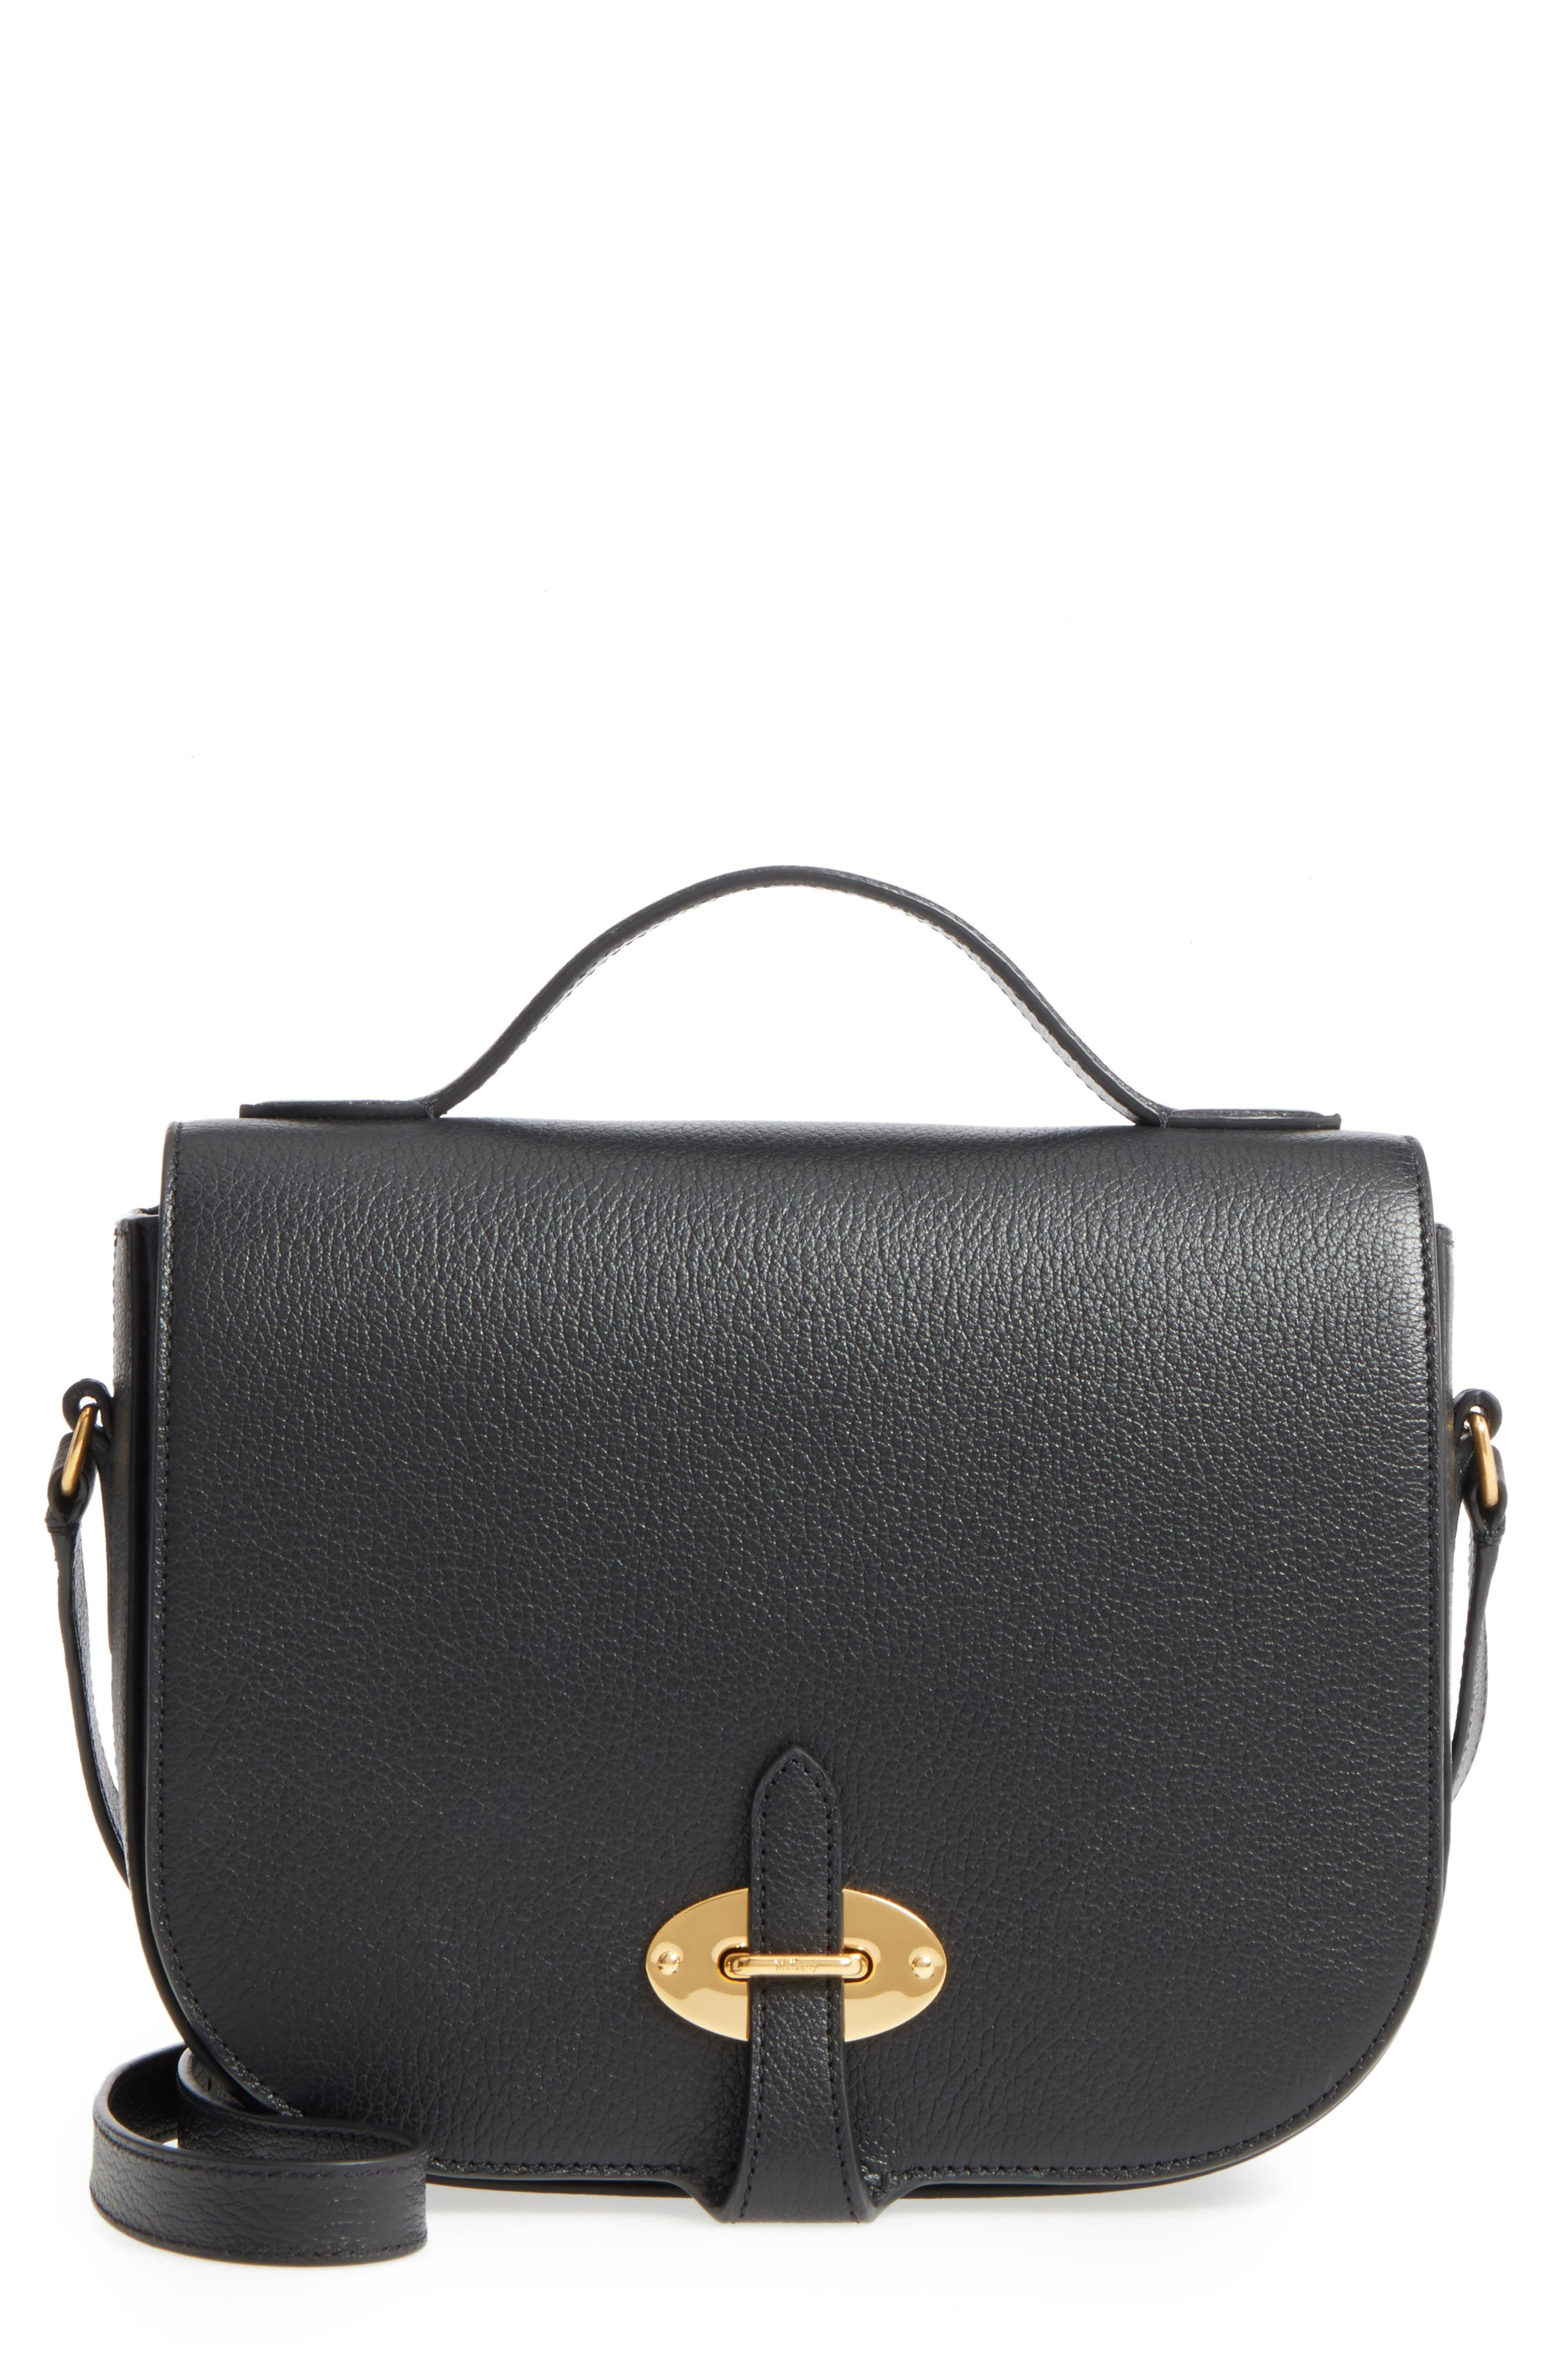 Tenby Calfskin Leather Crossbody Bag,                         Main,                         color, Black